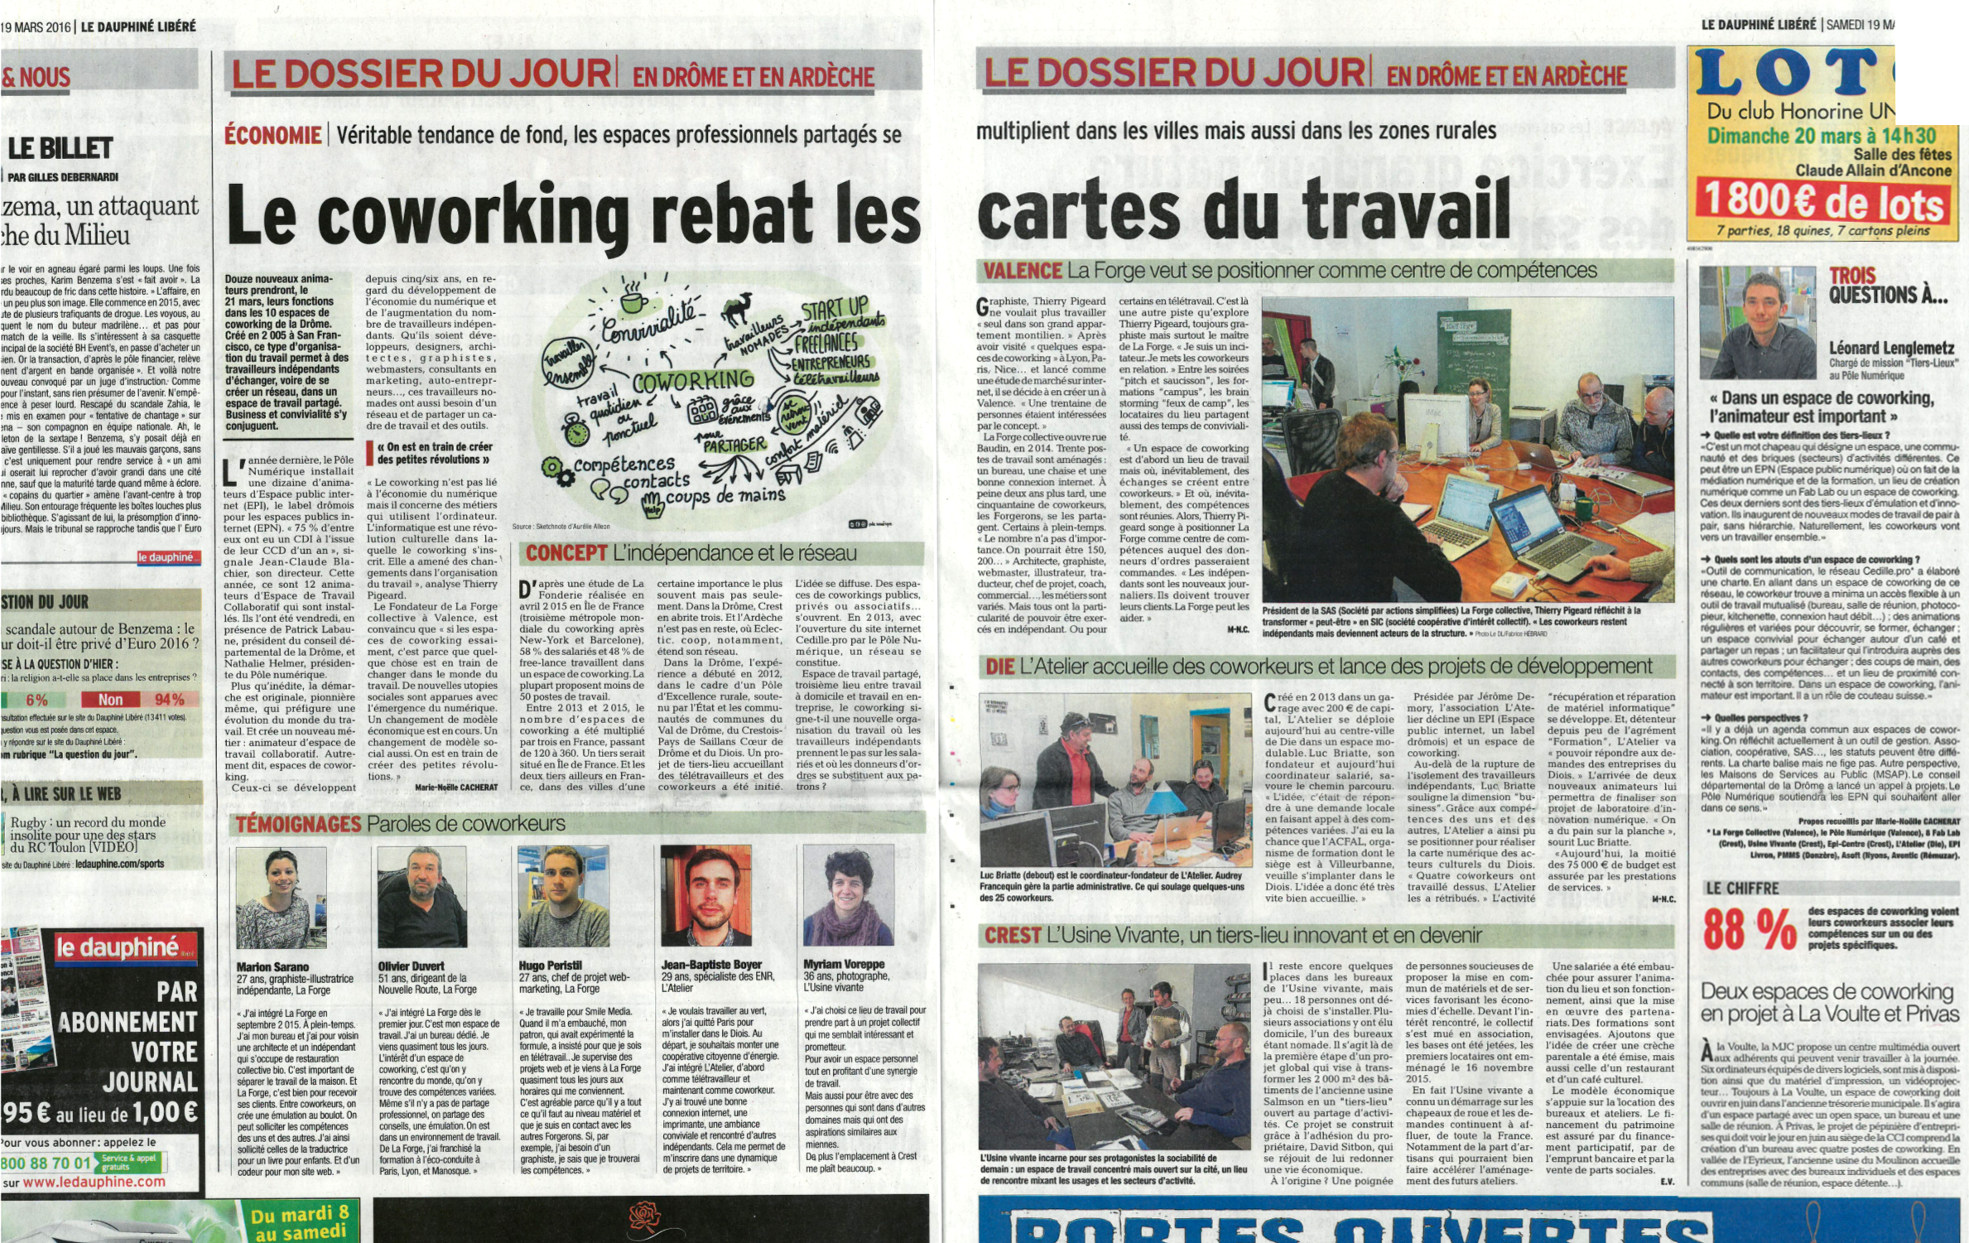 article_dauphine_coworking_19mars2016